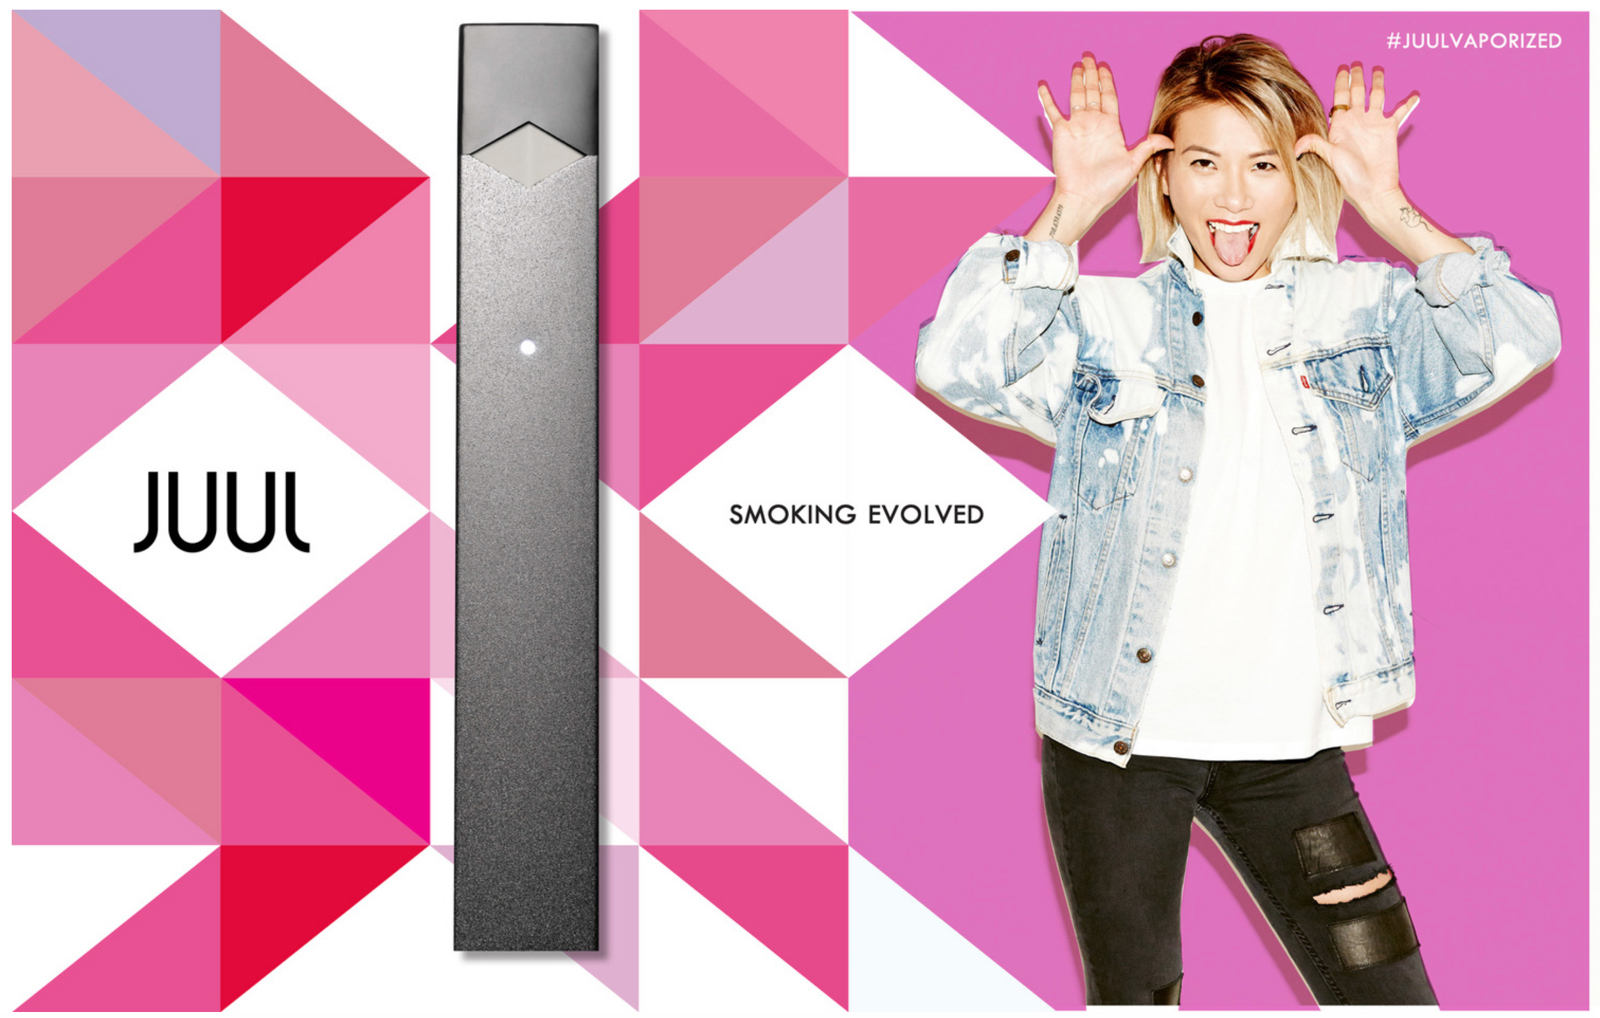 Juul Advertisement with multicolored shapes, a juul device and a young women making a funny face